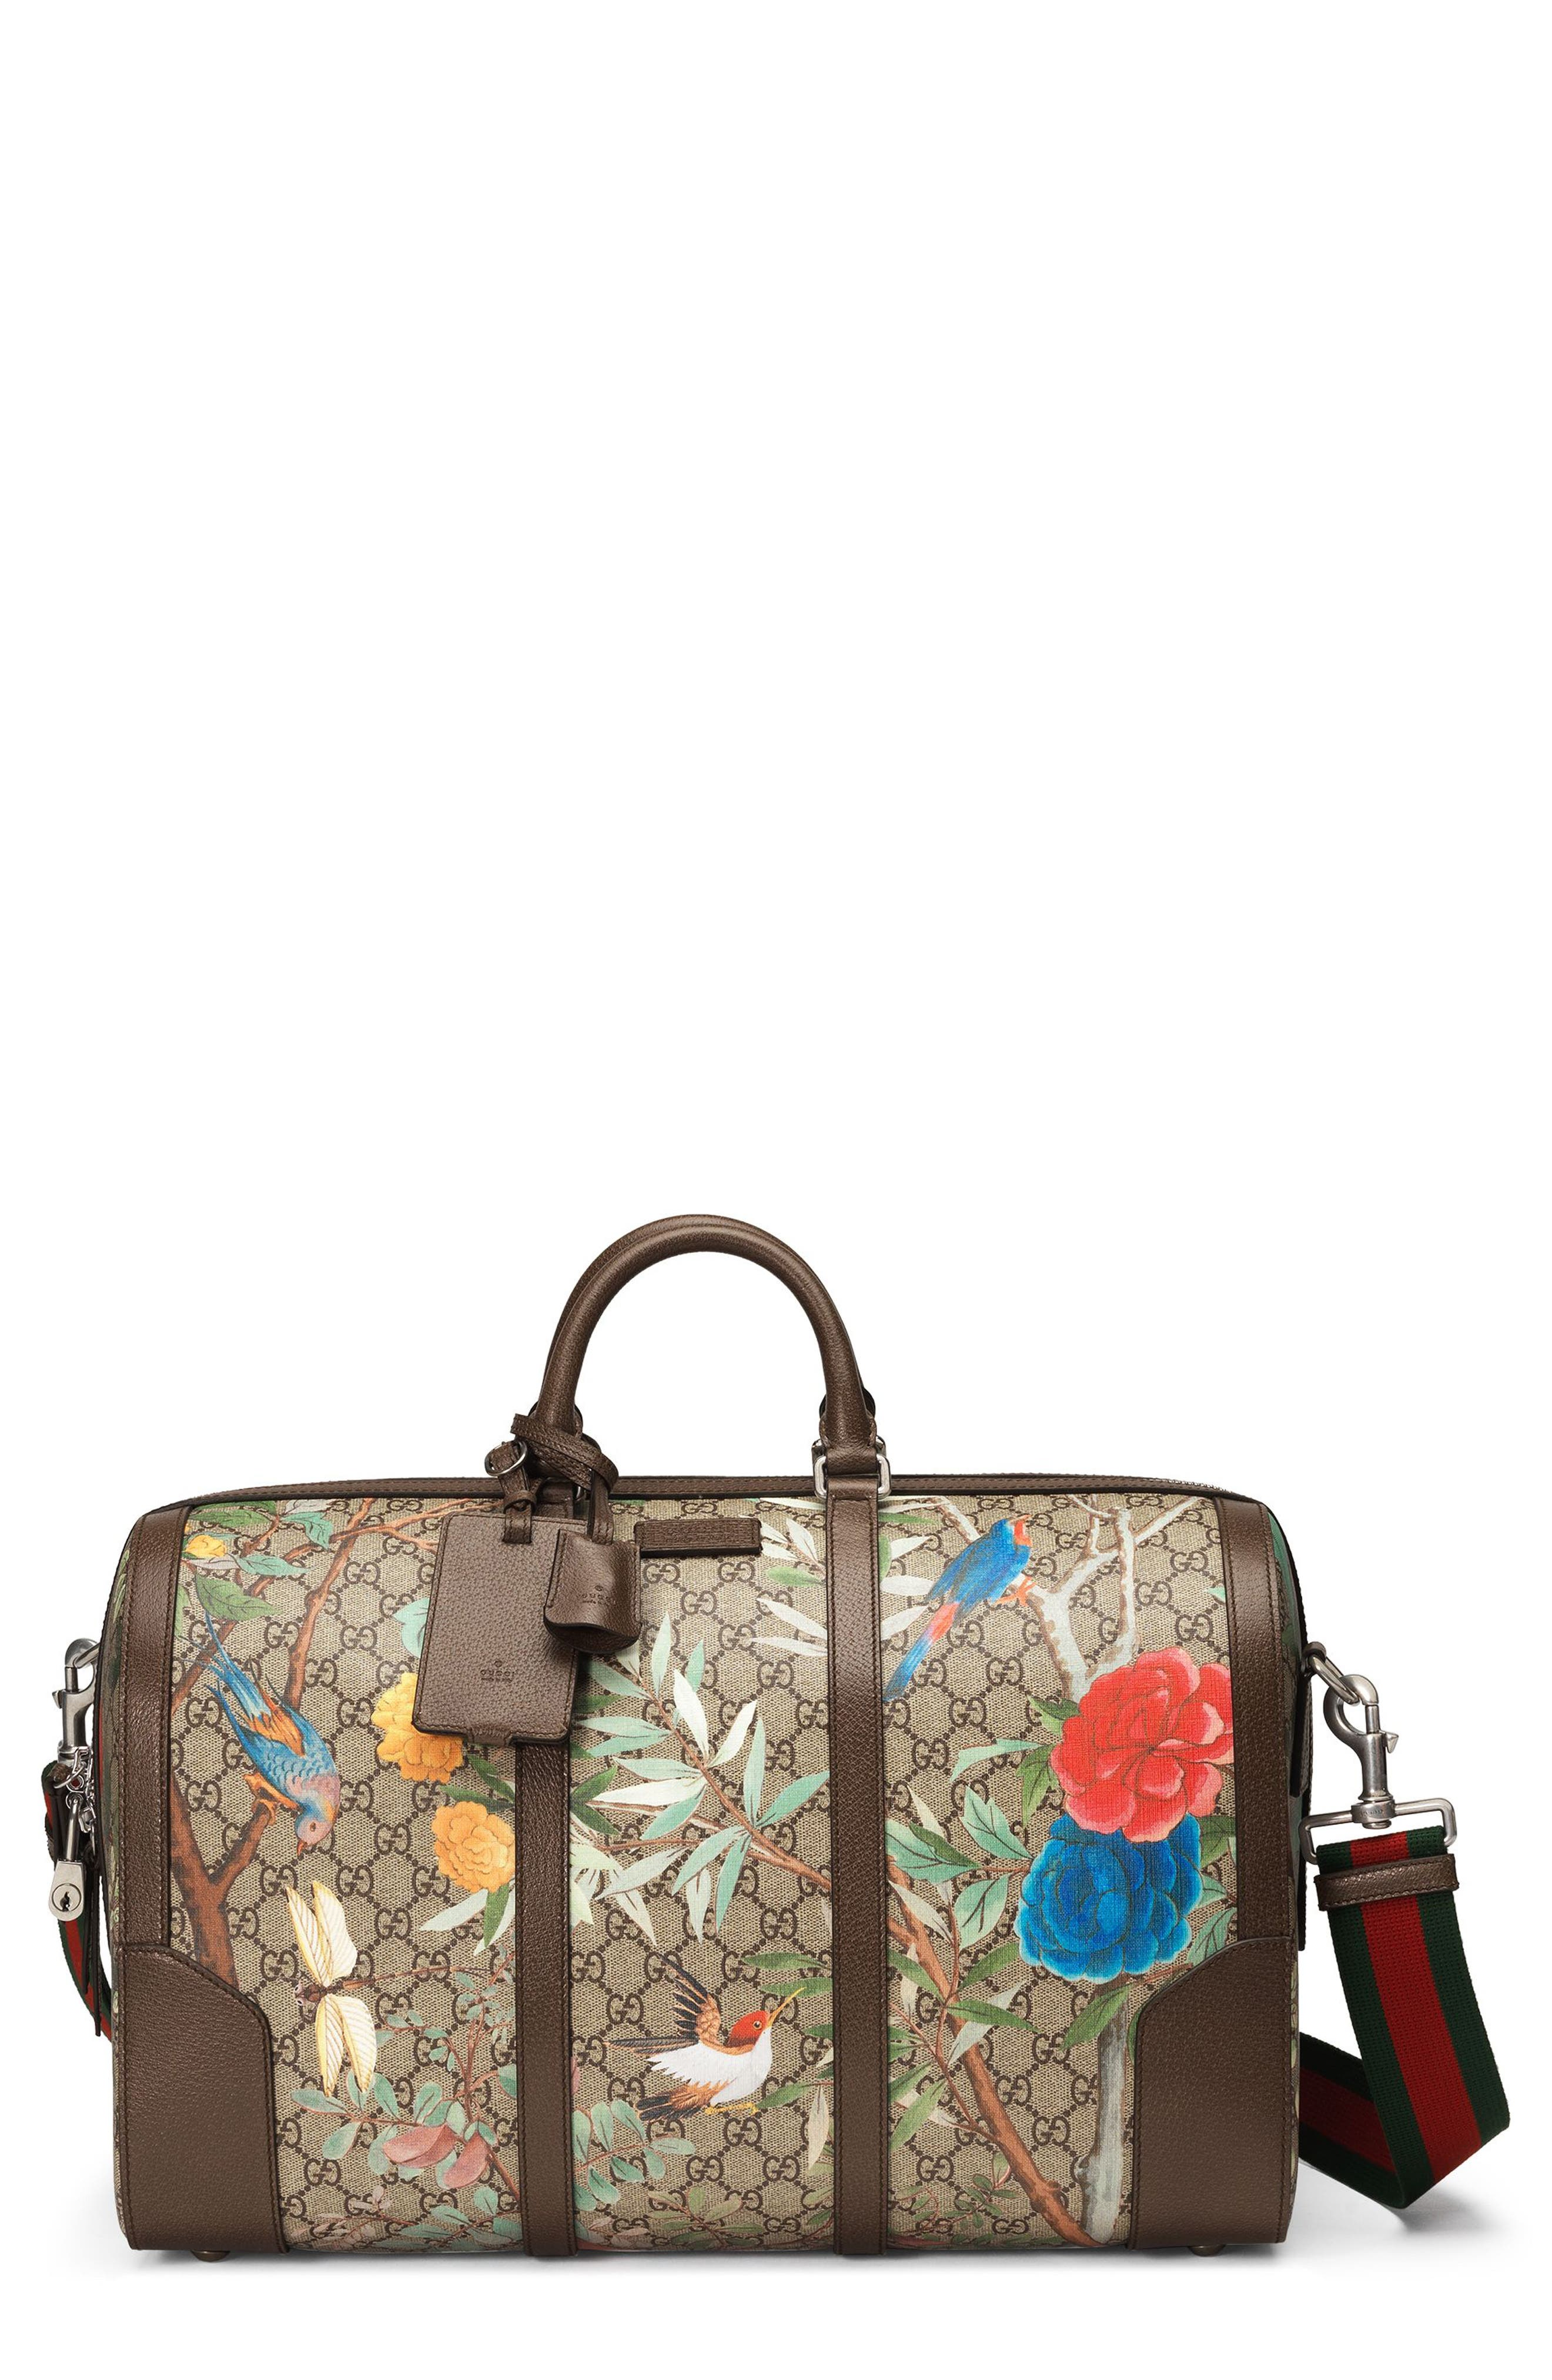 Gucci Tian GG Supreme Large Canvas Duffel Bag